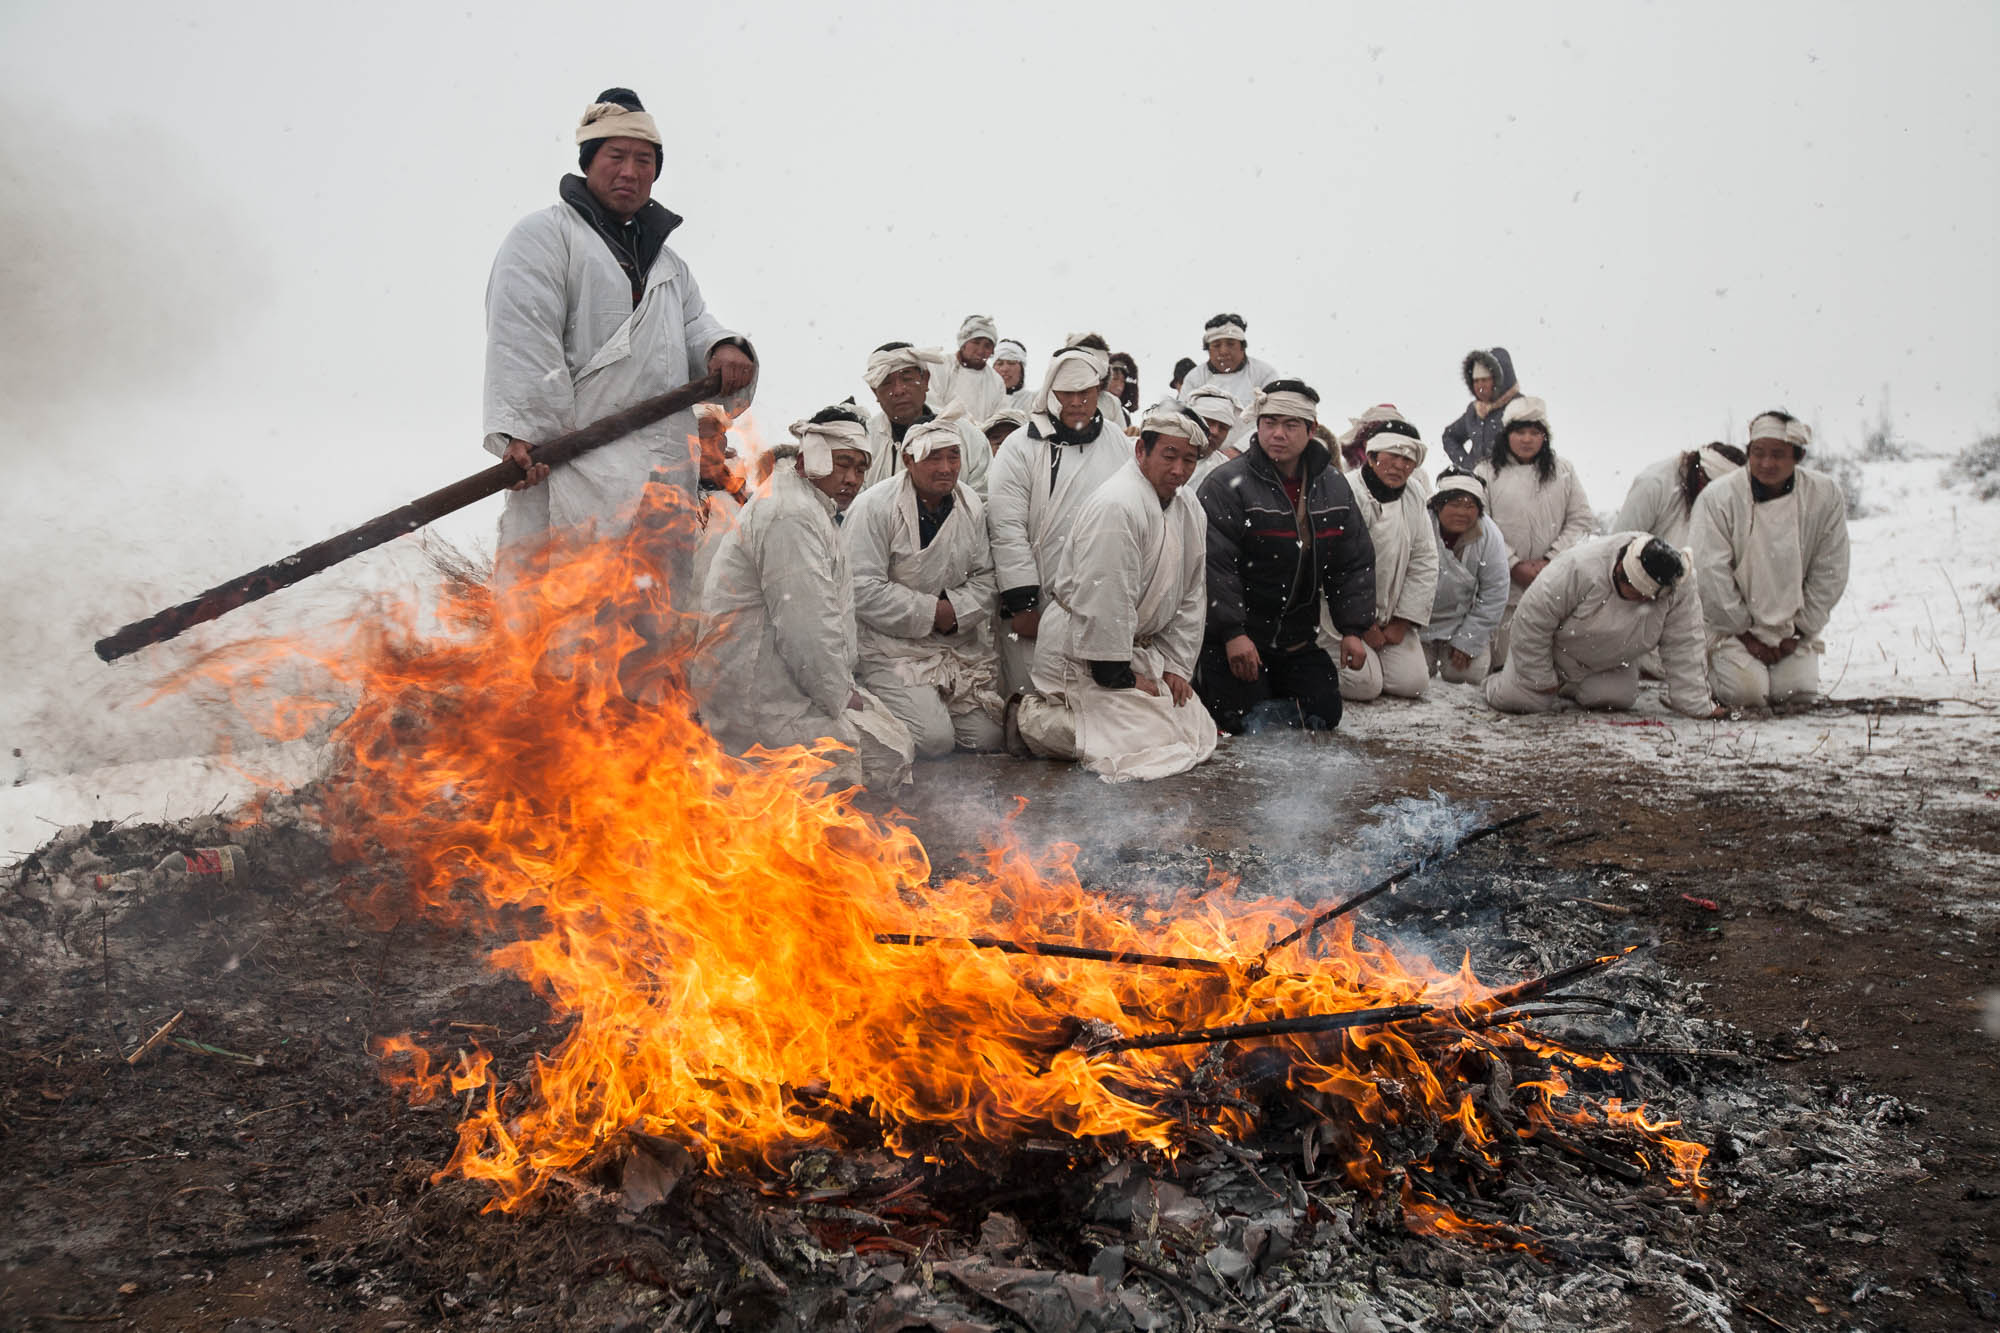 Traditional burial in the countryside. The mourning wreaths are being burned.